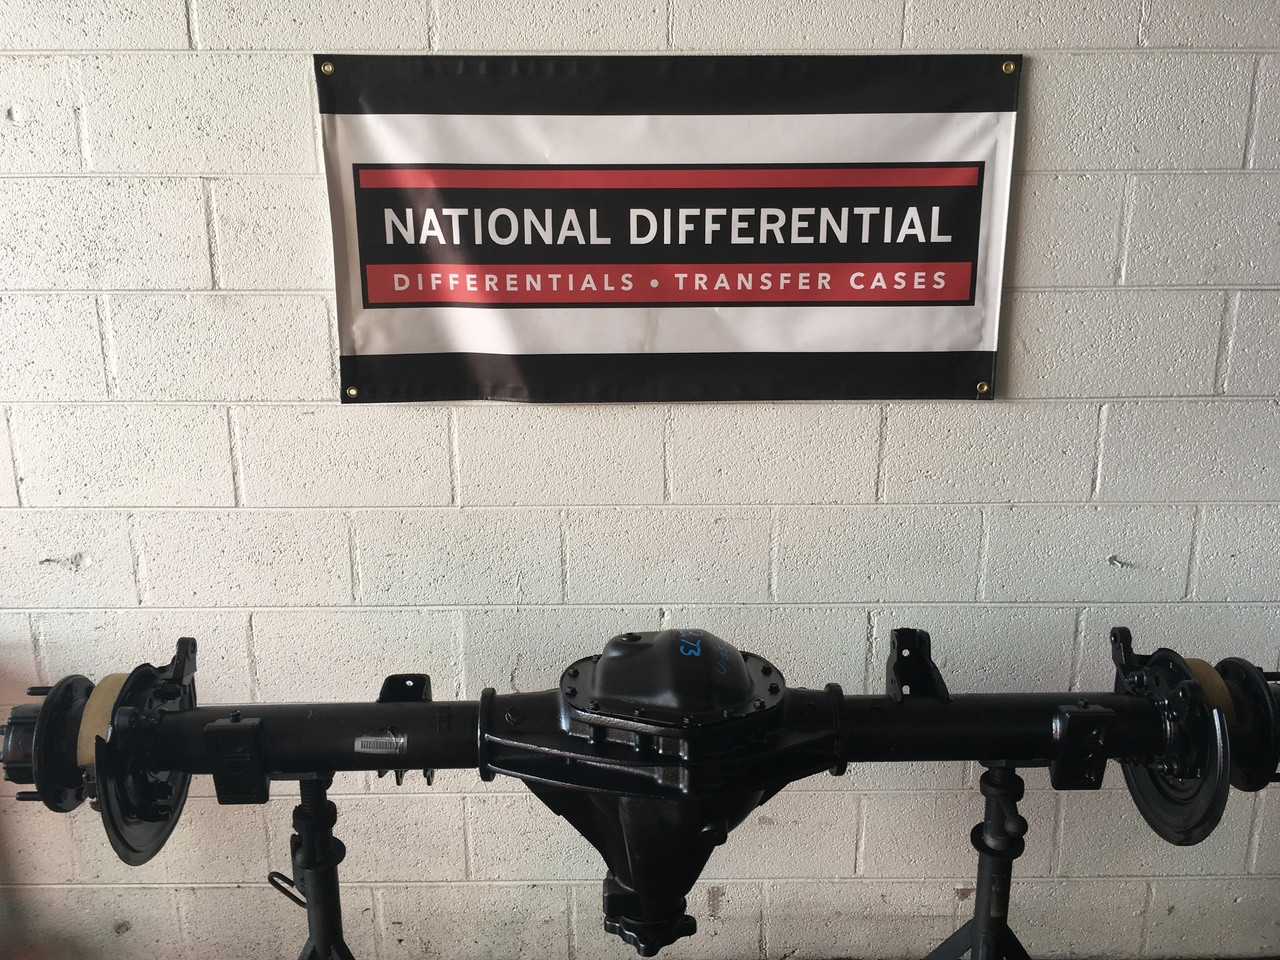 Rear 11.5-inch differential or 2010 and 2011 Ram 2500 Pickup Trucks from National Differential in Colorado Springs.